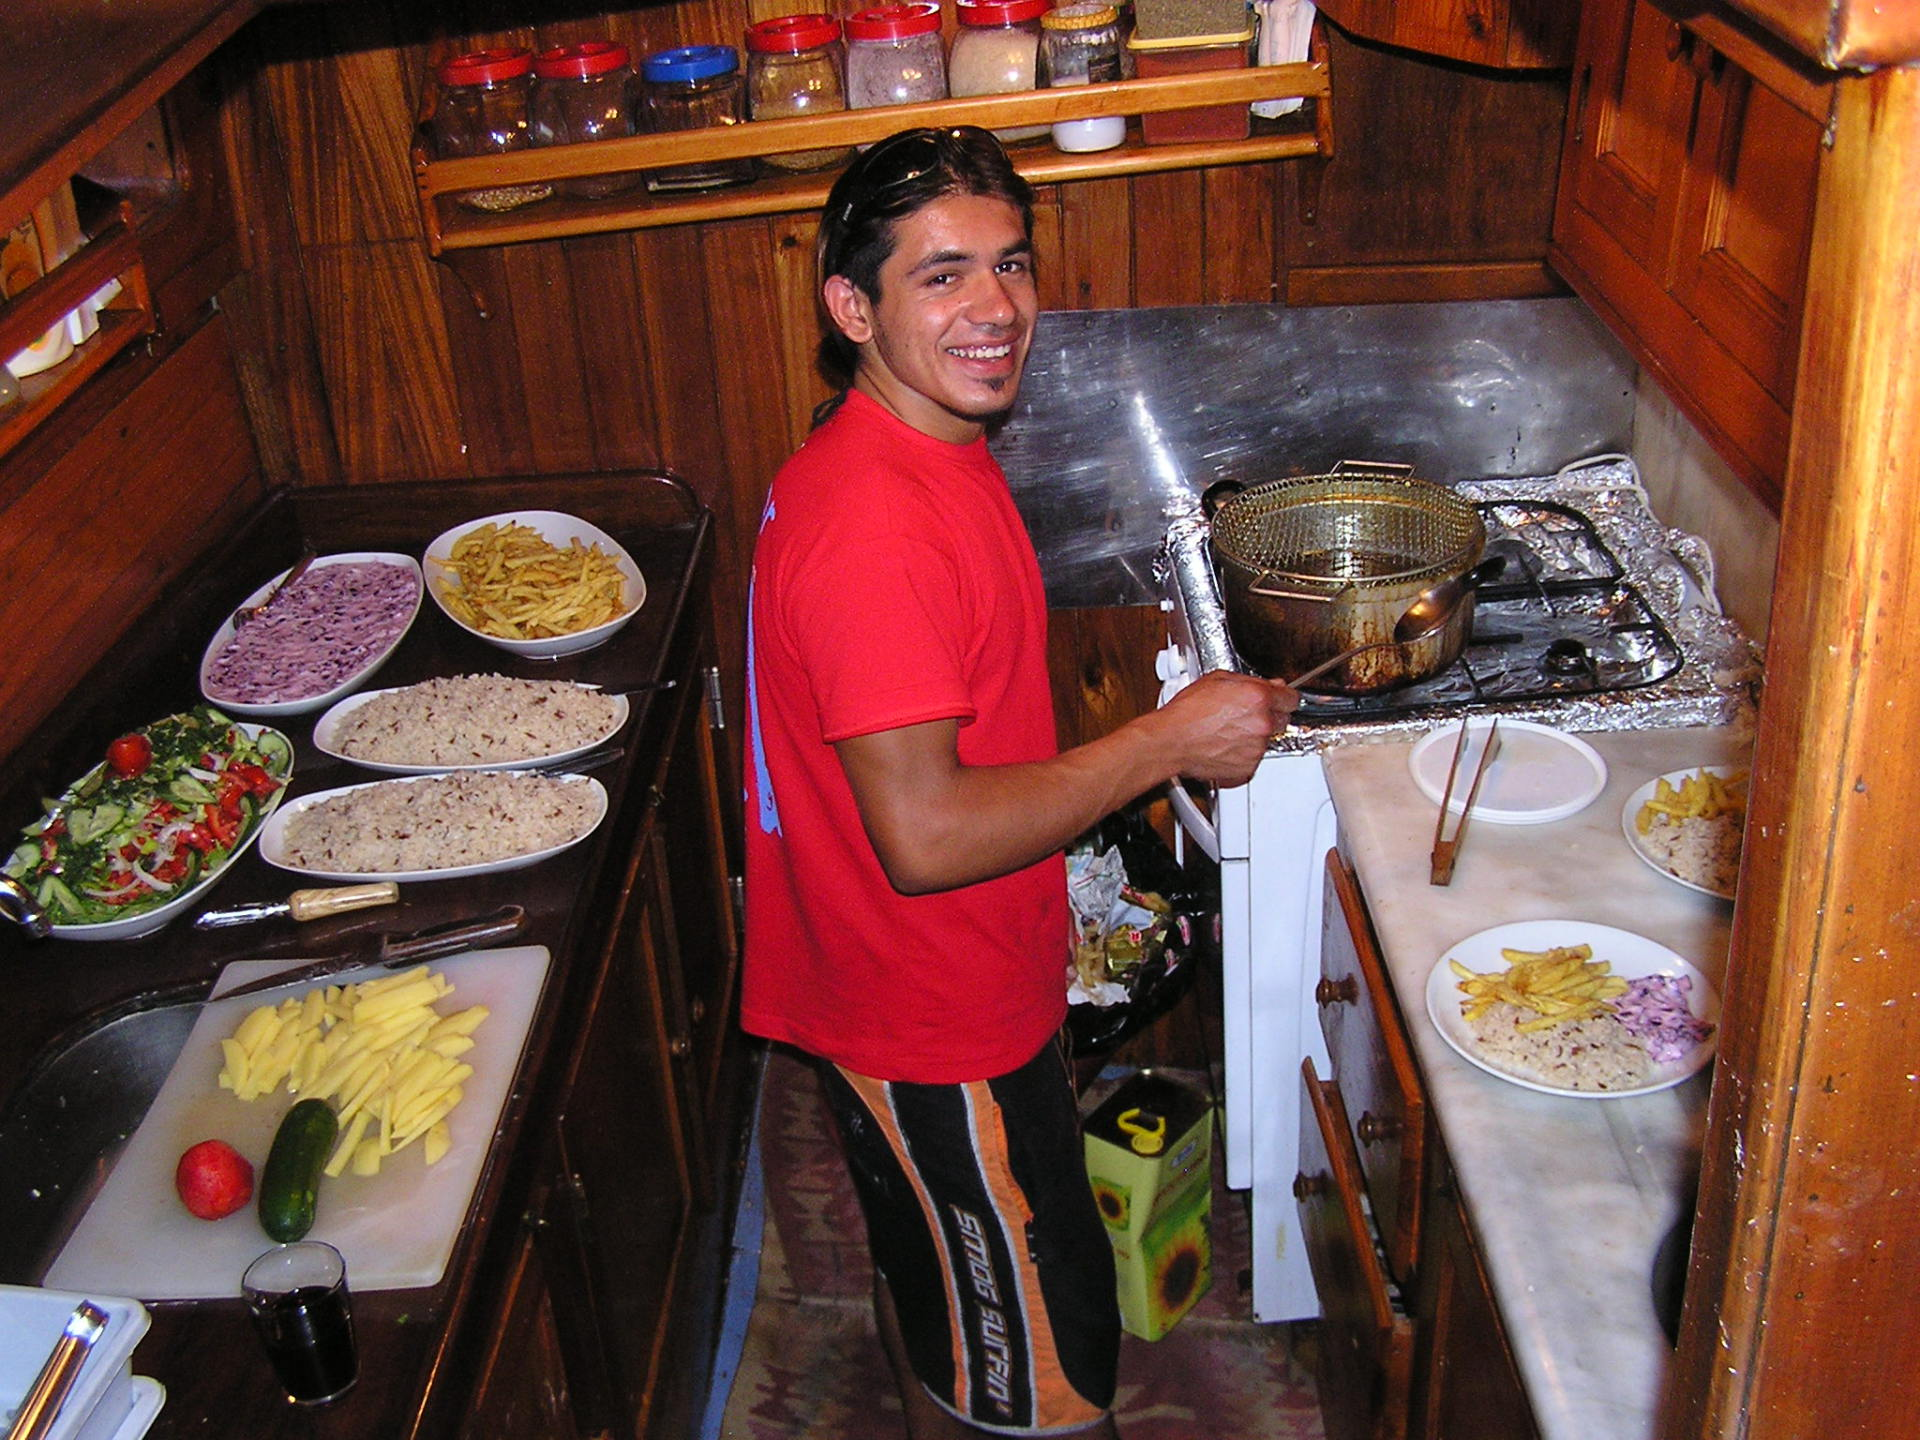 Second Mate Söner performed magic in the boat's little galley kitchen. Mediterranean Coast, Turkey: chapter 59, You must only to love them. http://mershon.wordpress.com